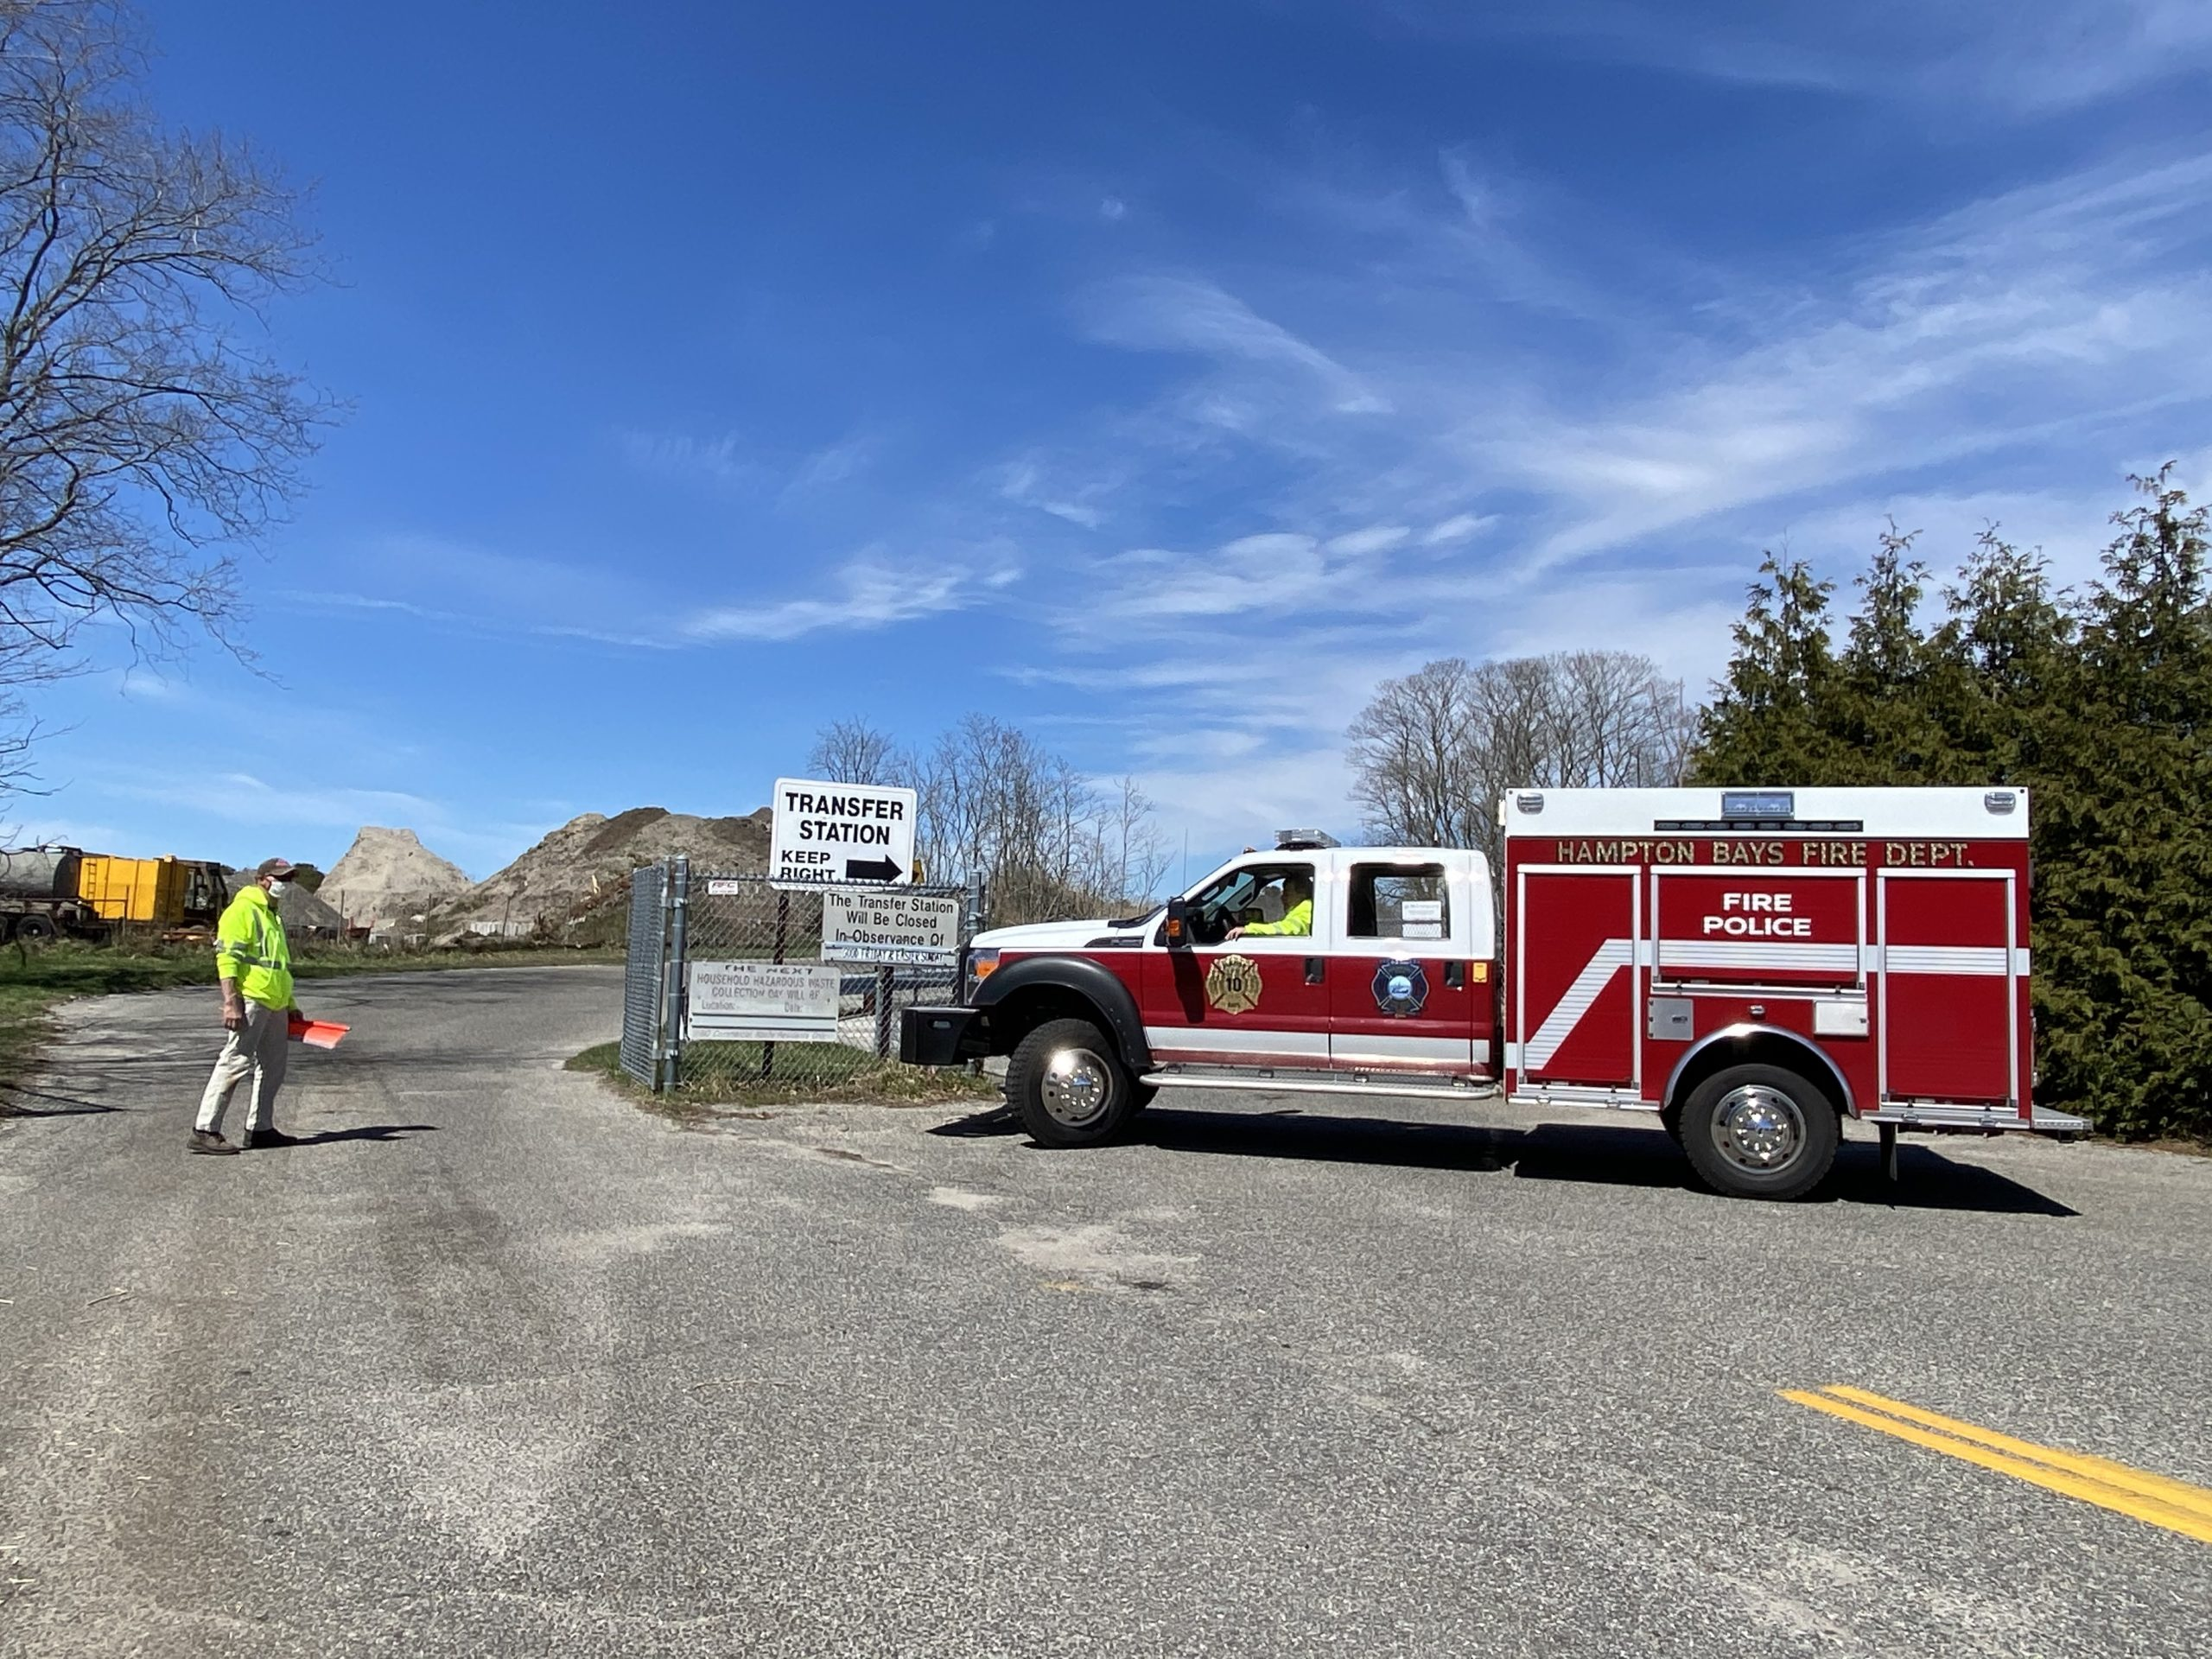 The Hampton Bays transfer station is closed as officials work to determine the cause of the fire there.